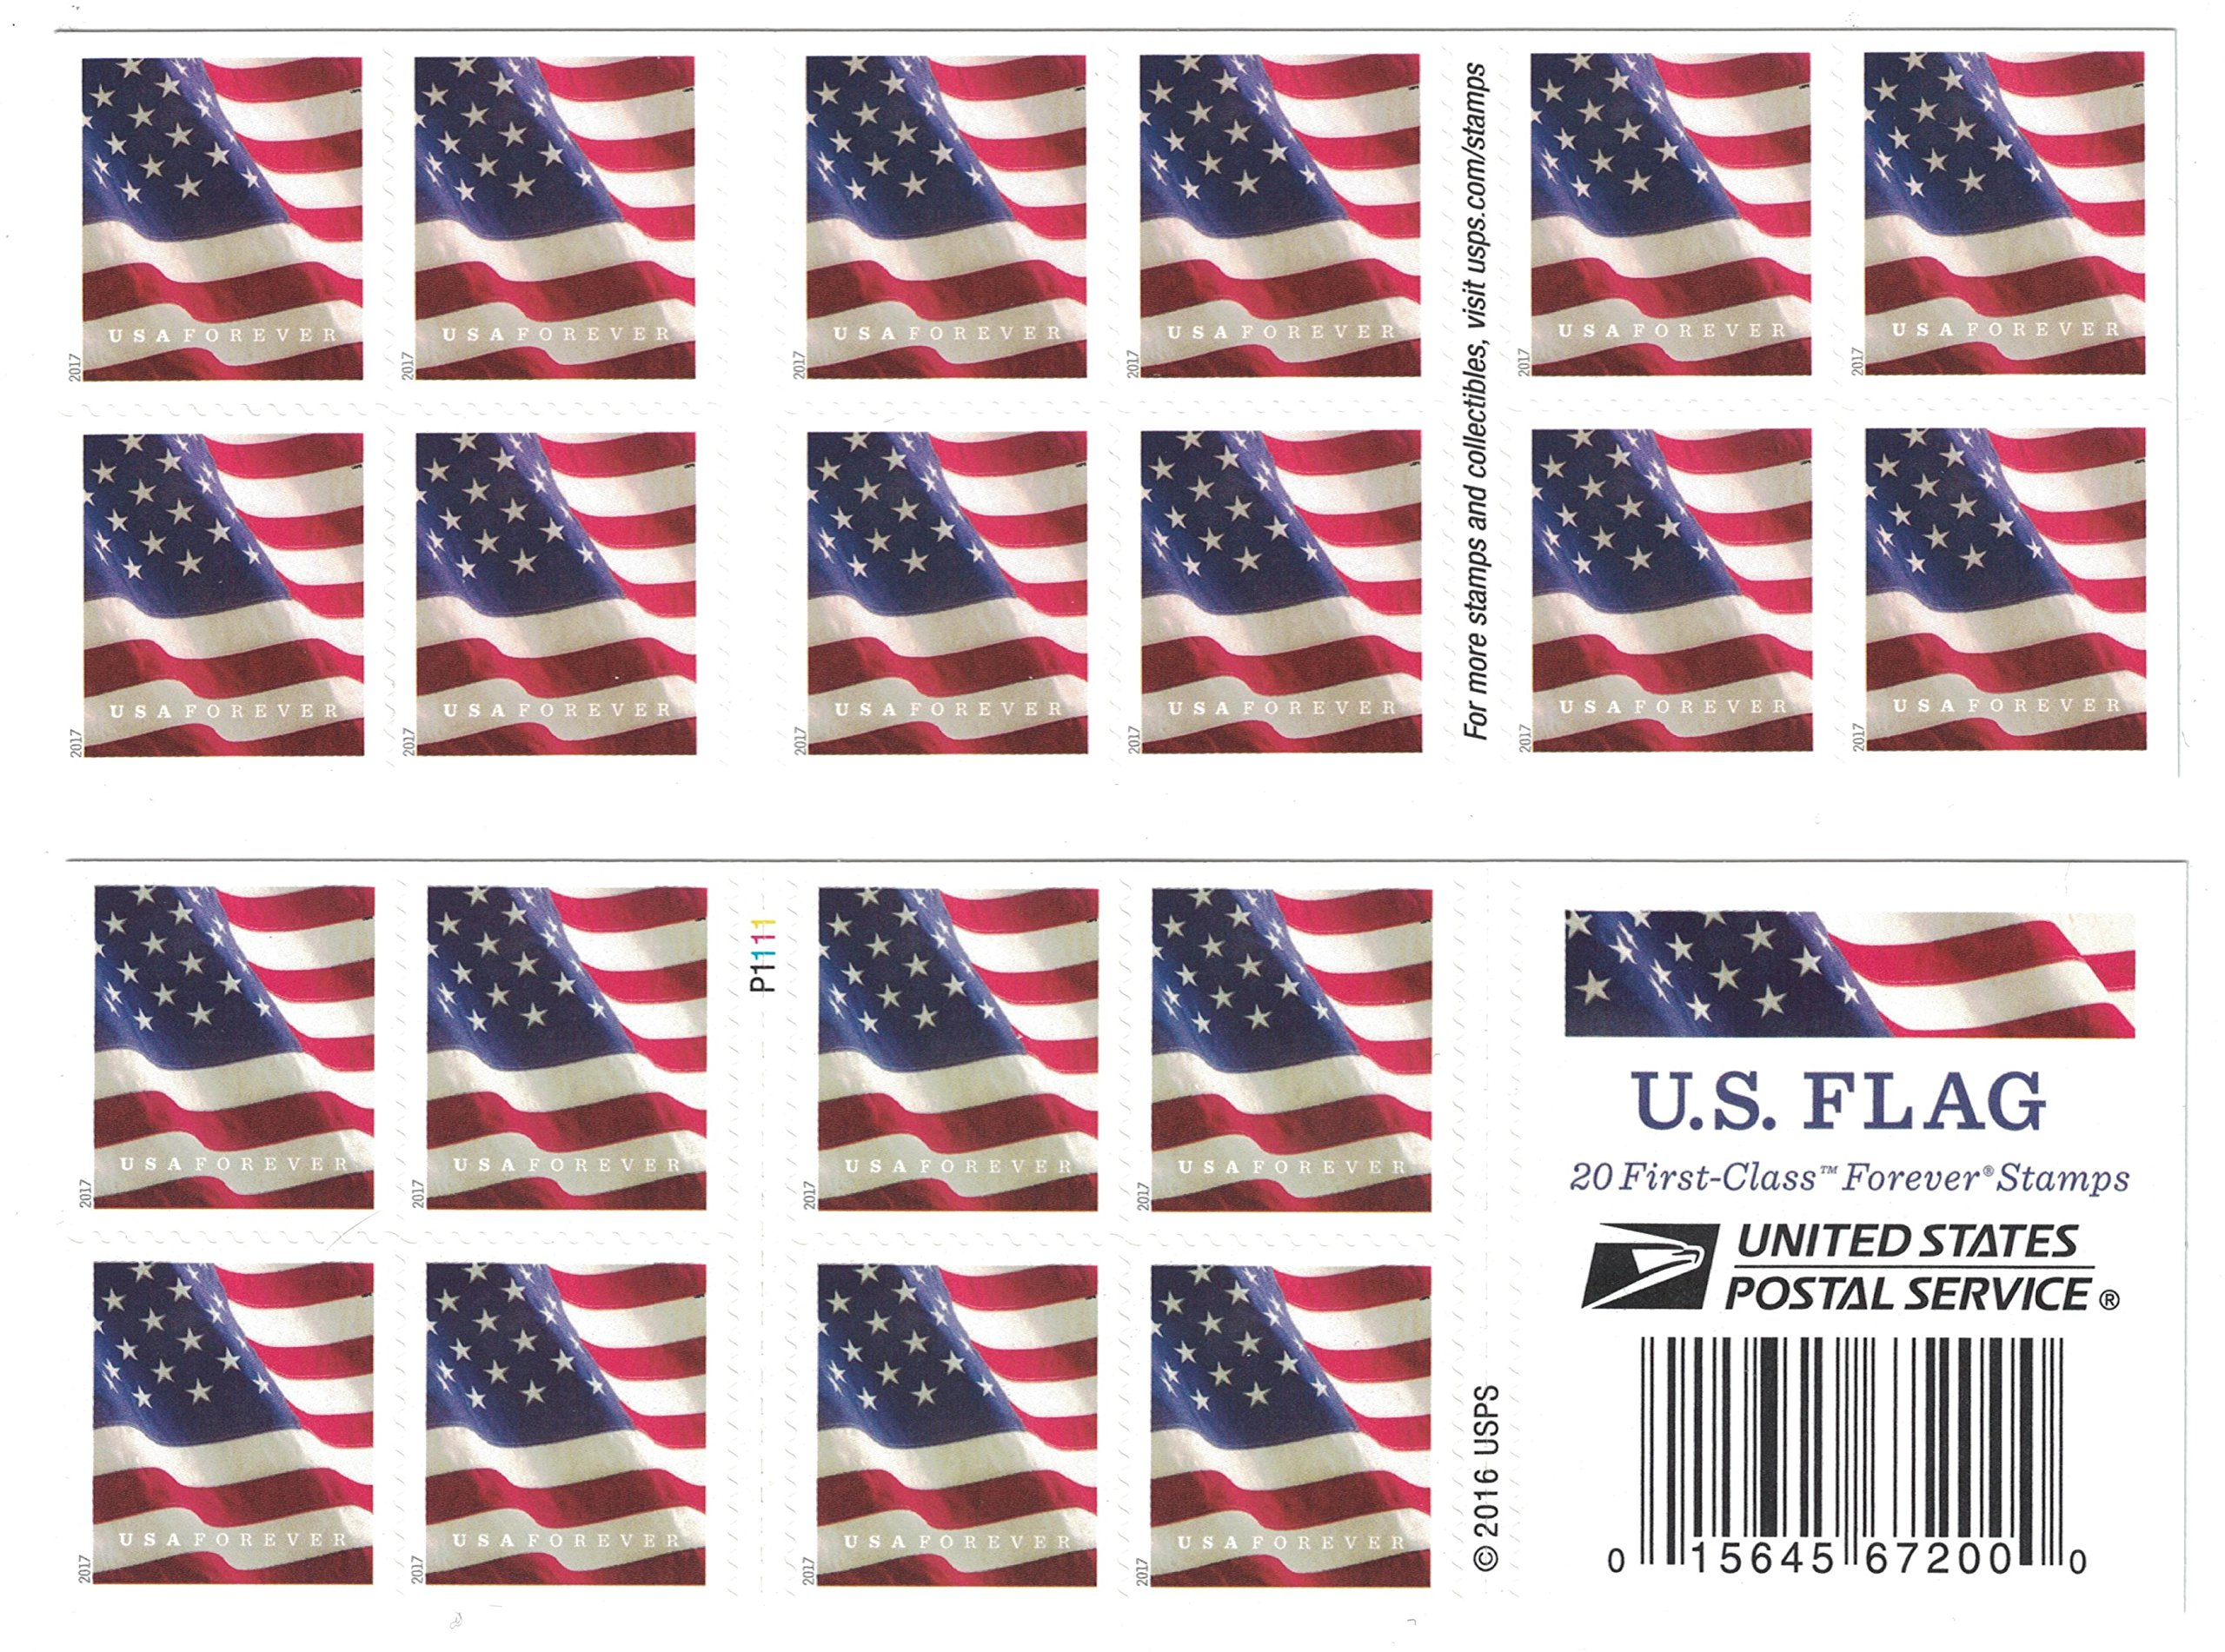 USPS U.S. Flag Forever Stamps, Book of 20-2017, 20 Stamps